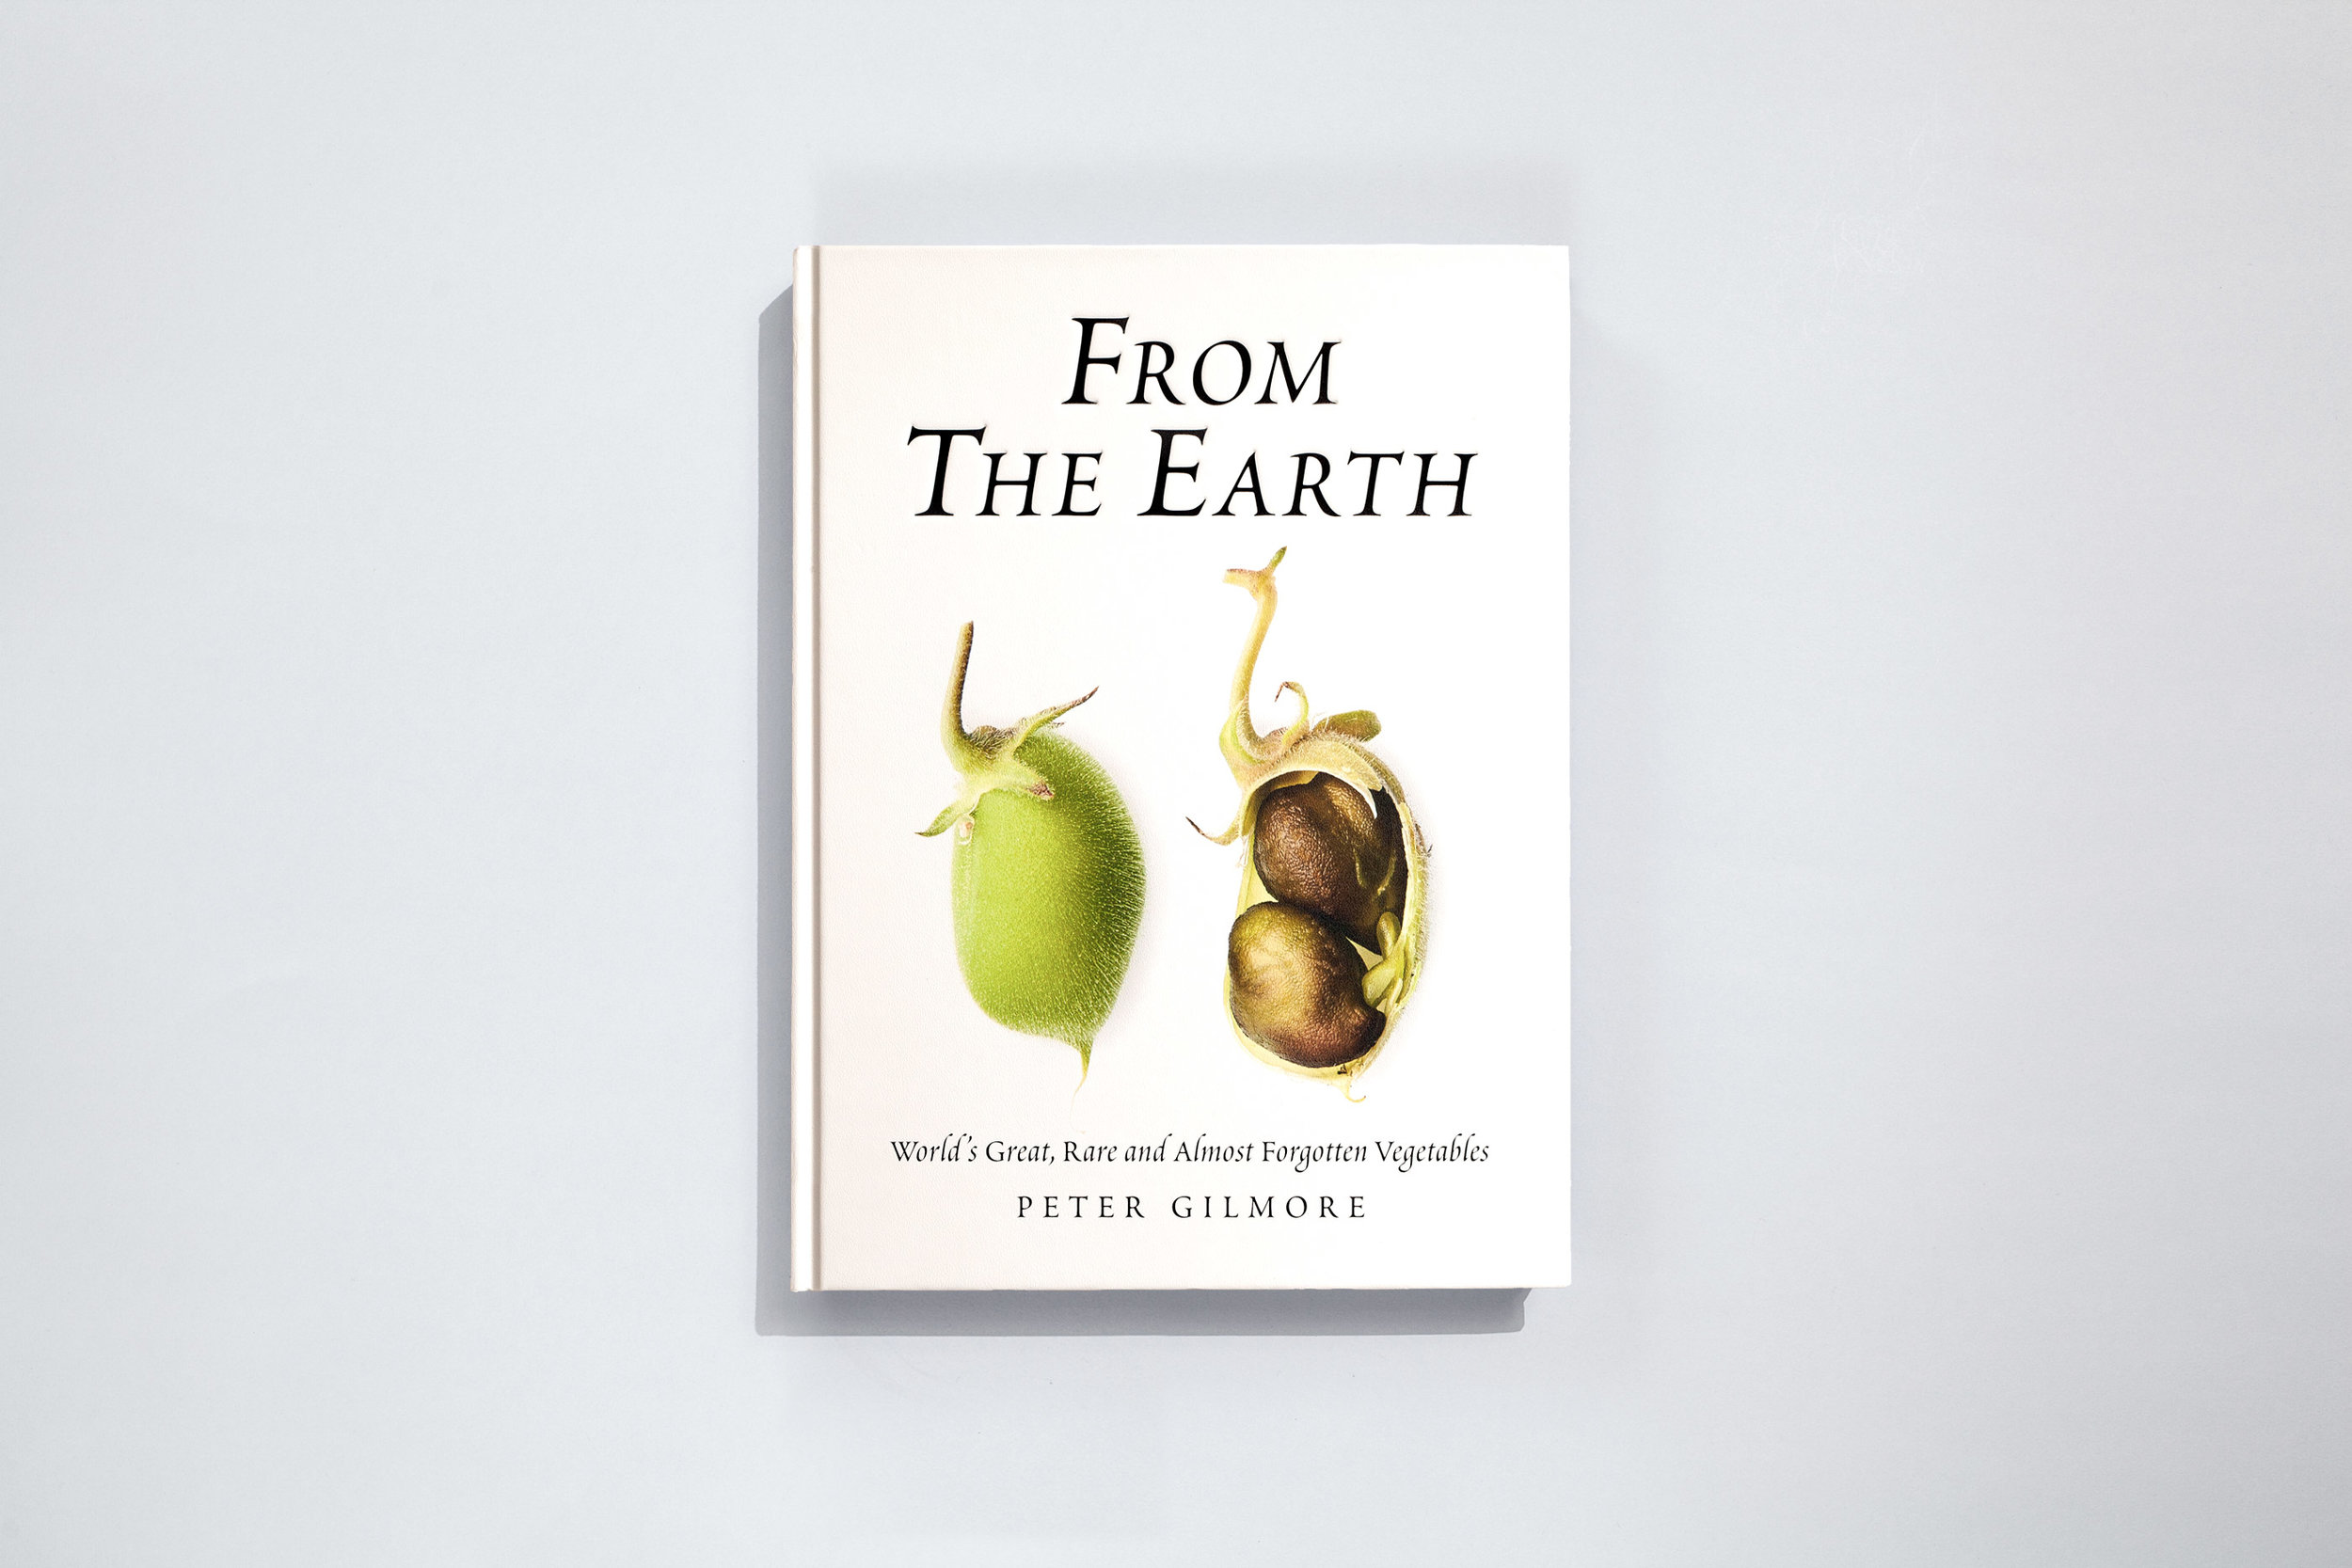 Title – From the Earth Author – Peter Gilmore Designer – Daniel New Photographer – Brett Stevens Publisher – Hardie Grant Books  New York Rights Fair – 2019 + Honourable mention for Excellence in Graphic design